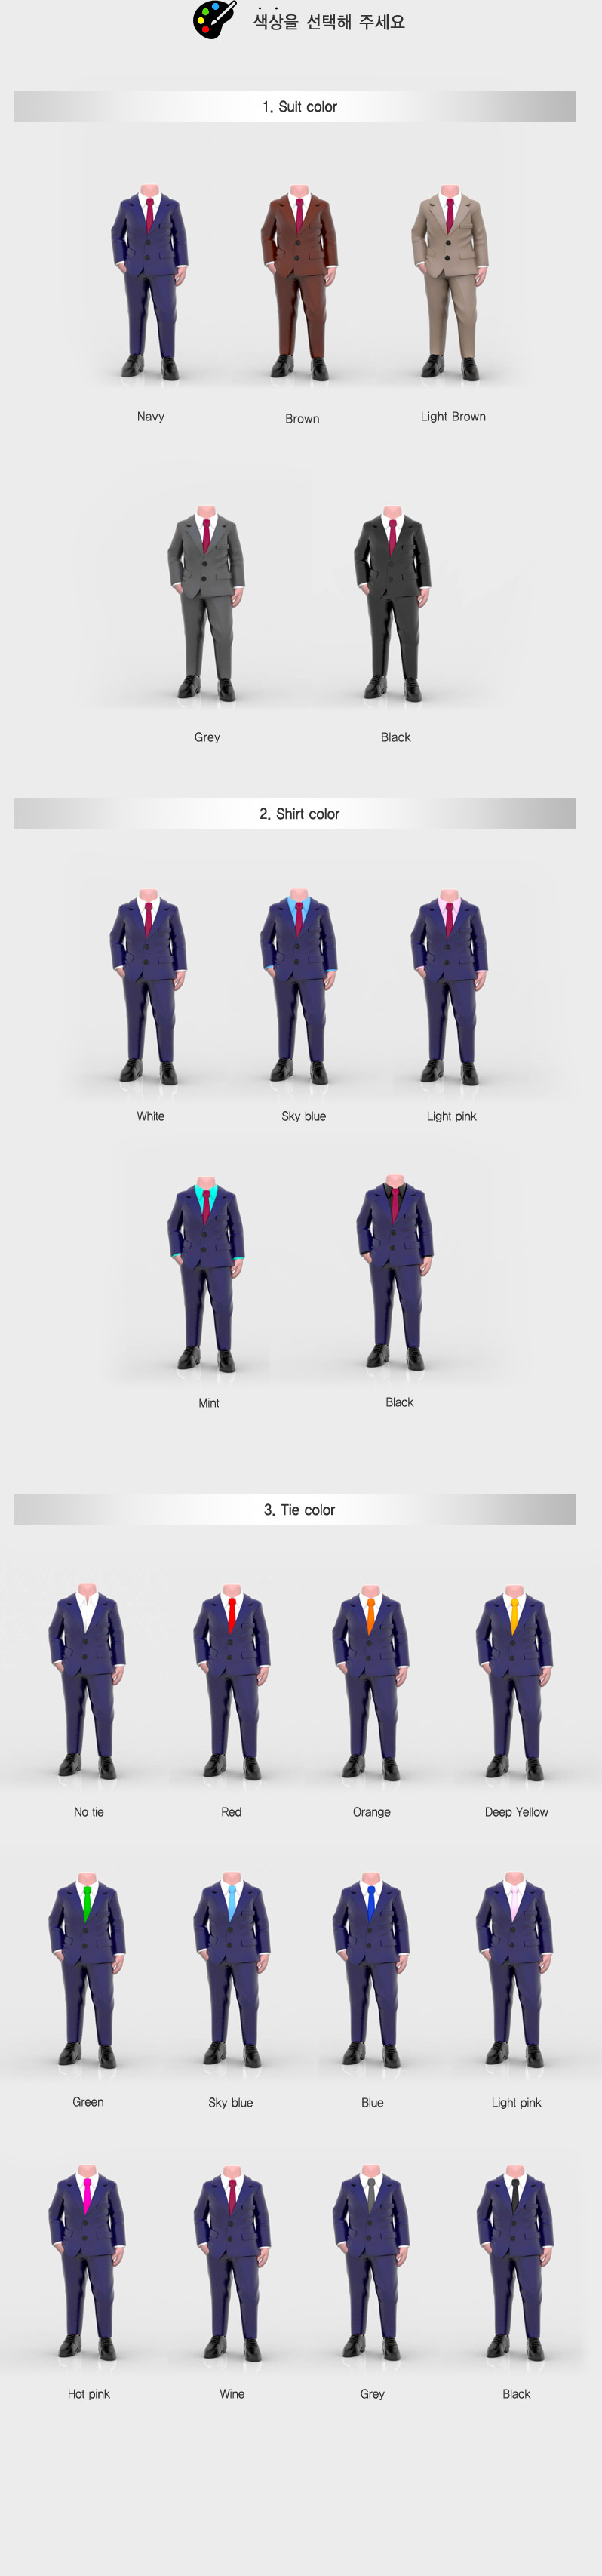 suit_coloroption